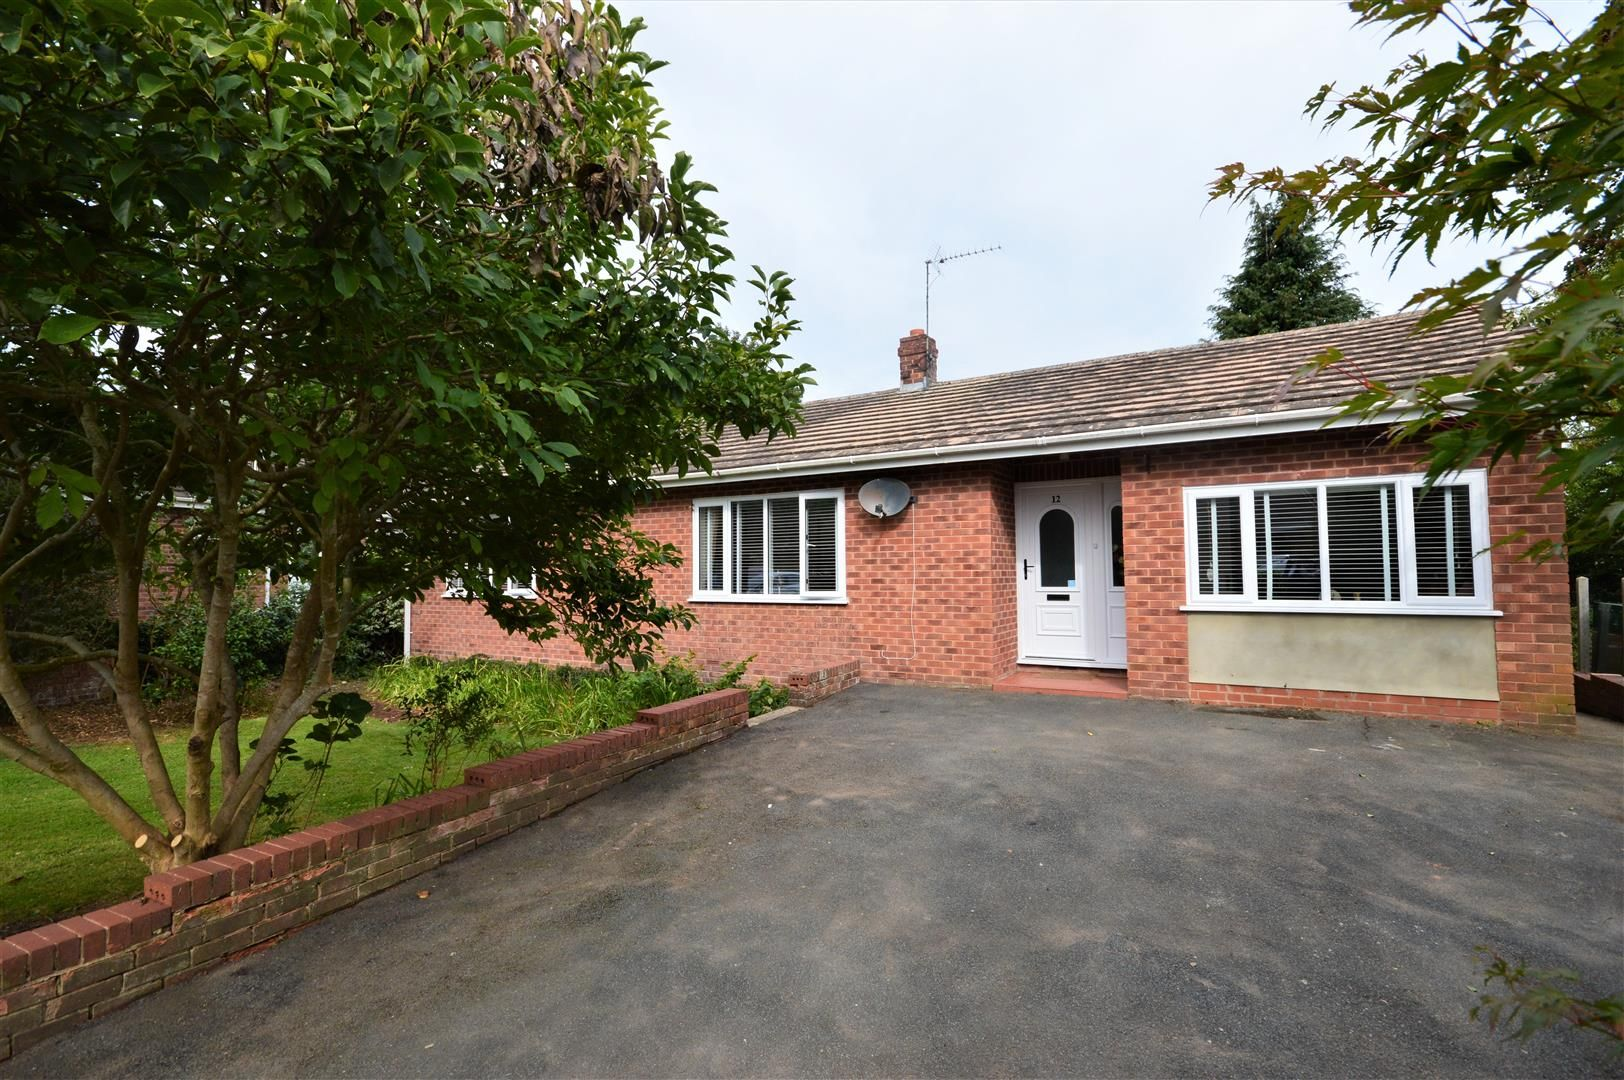 3 bed detached-bungalow for sale in Orleton  - Property Image 1